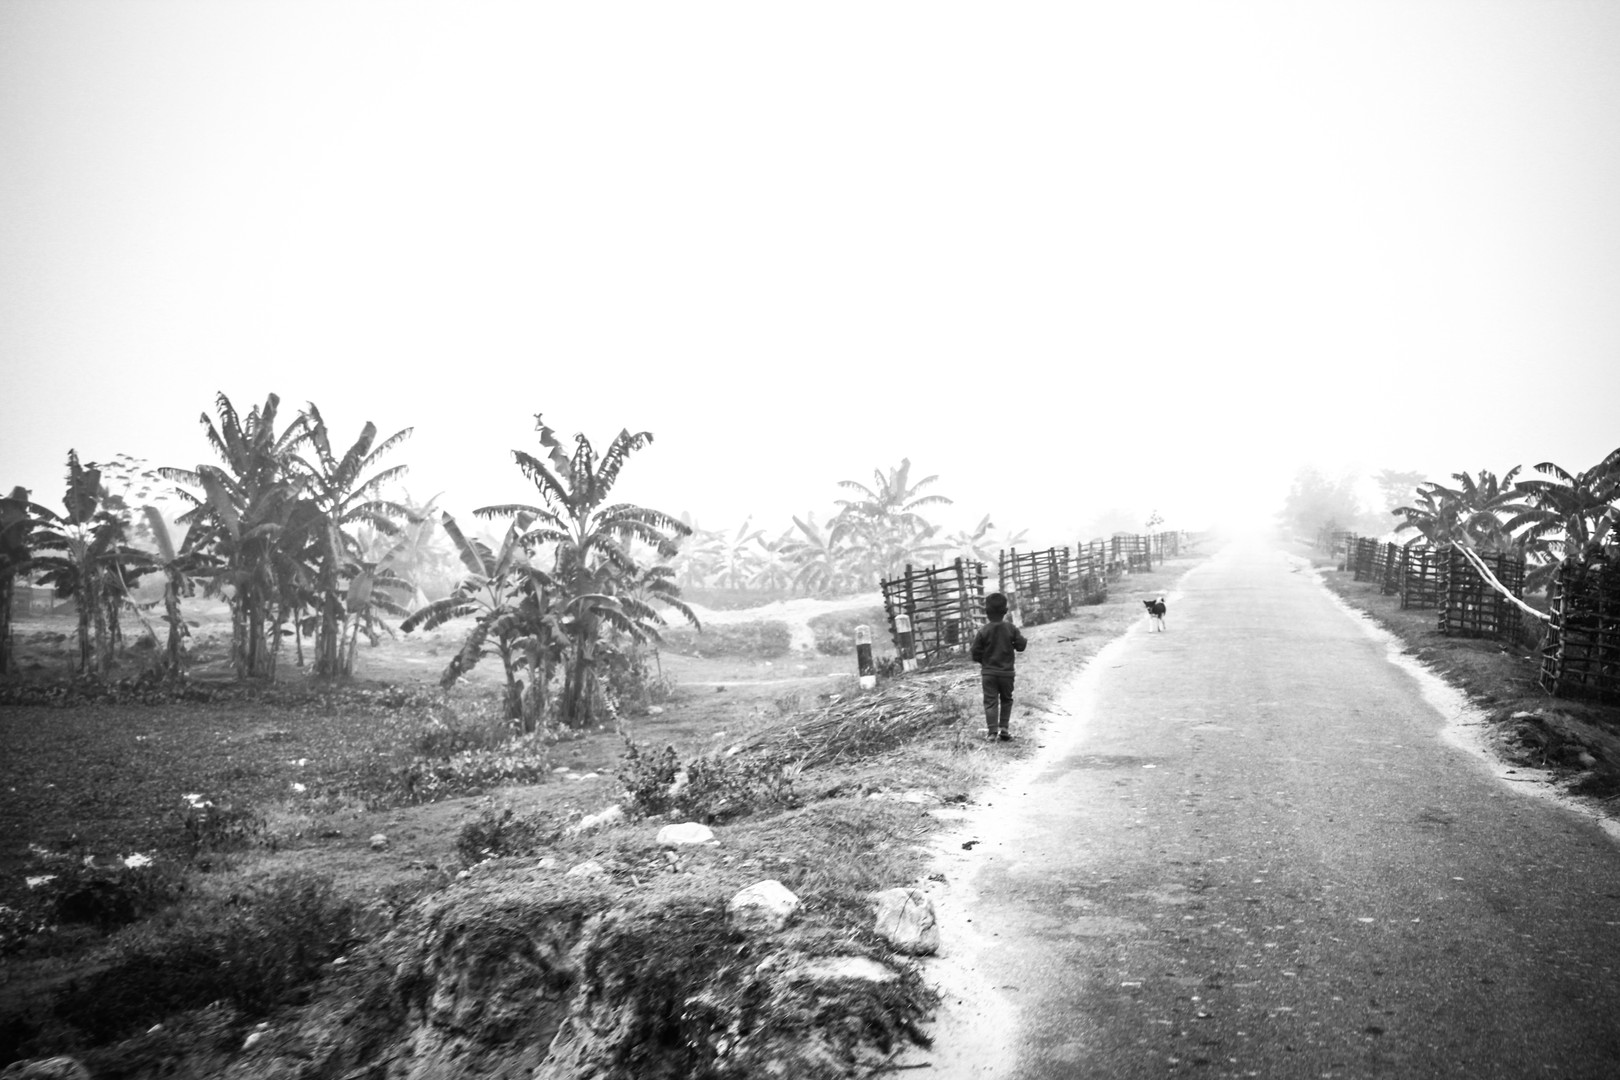 The Road to | Assam, 2017